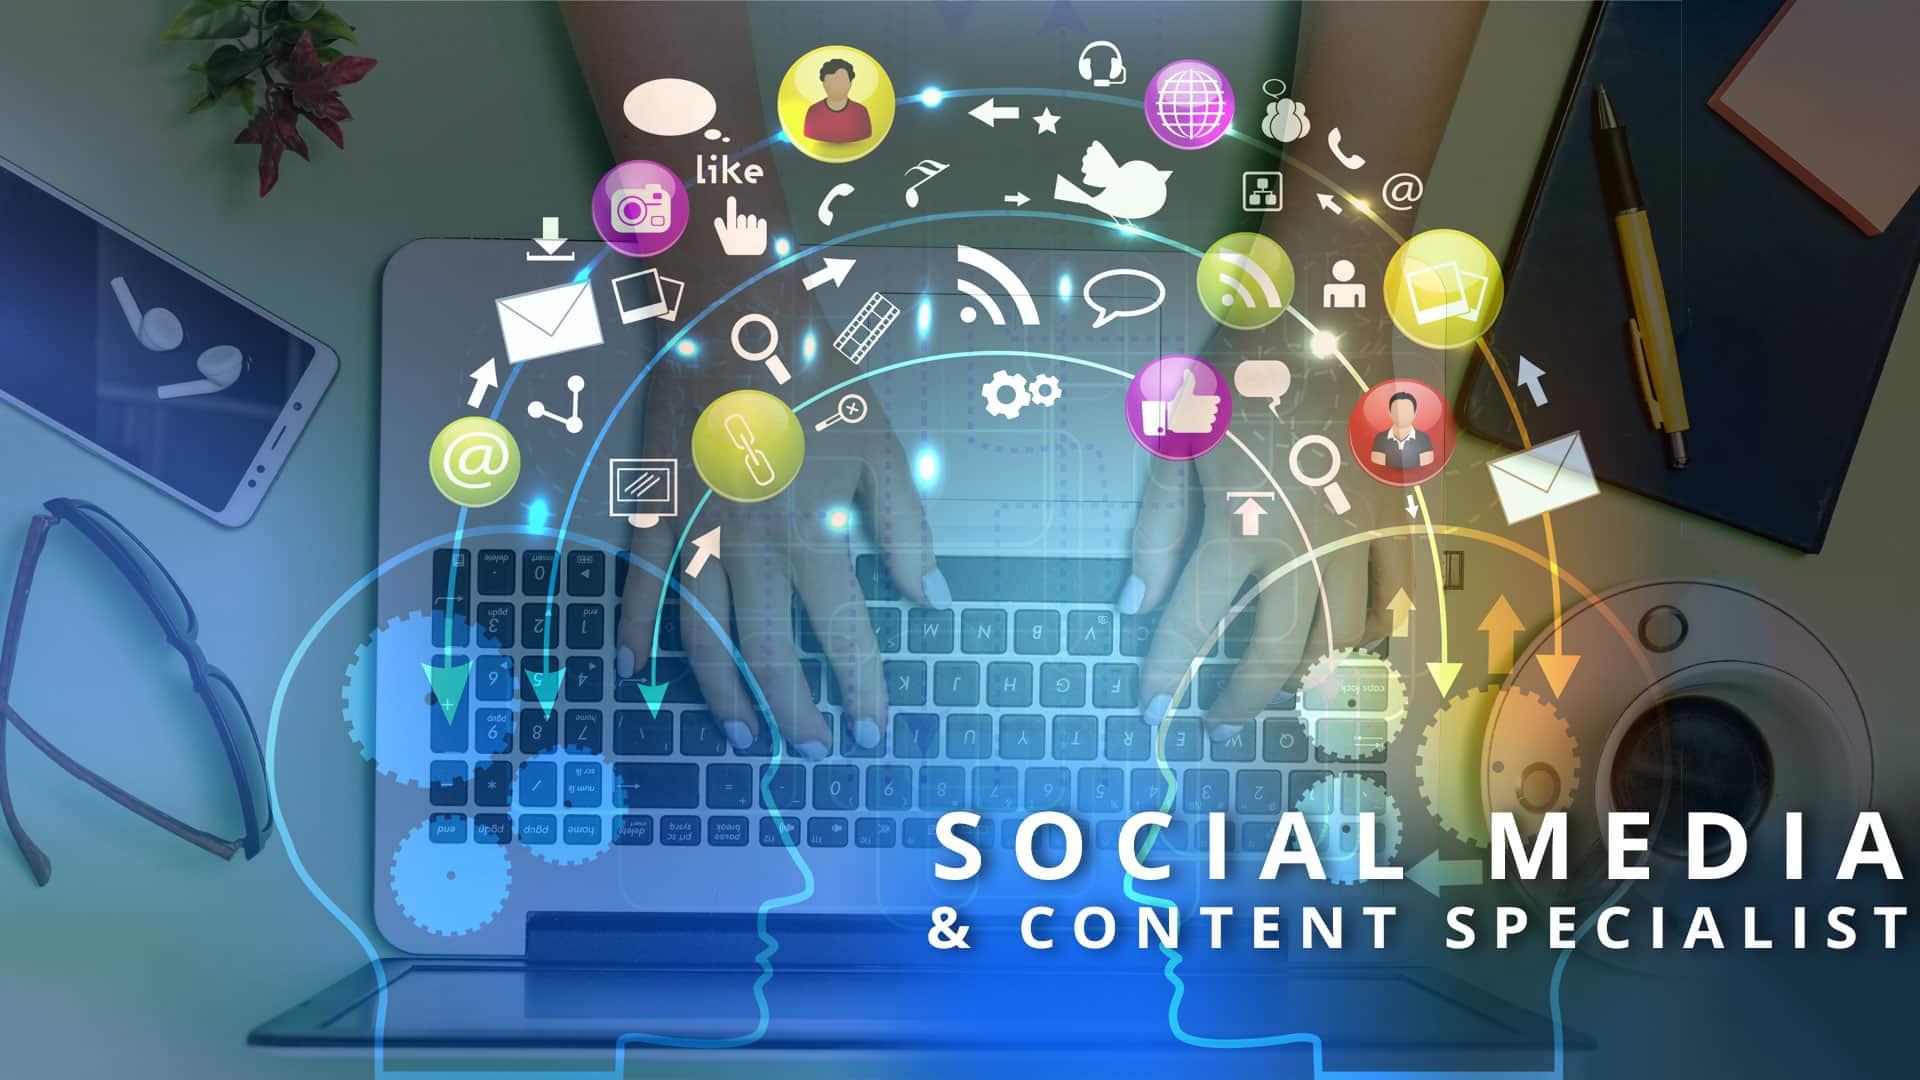 Social Media and Content Specialist